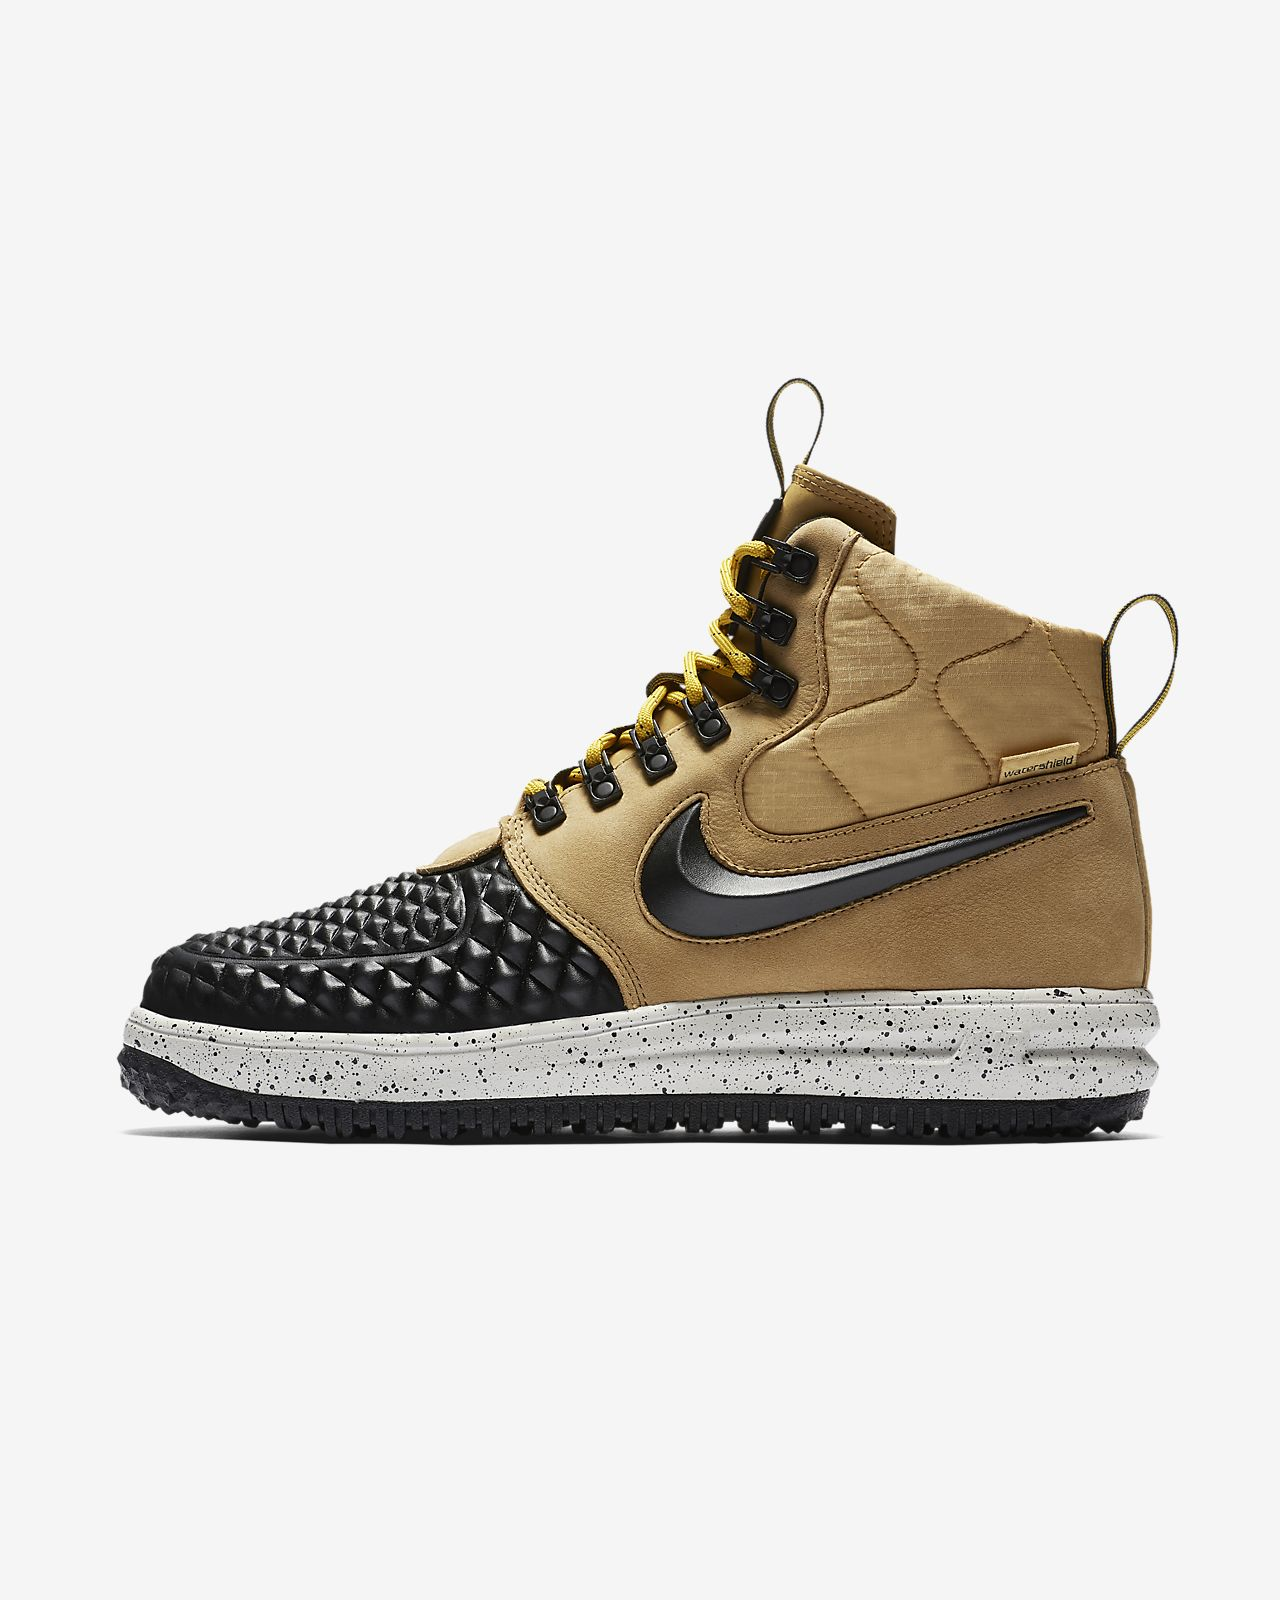 the best attitude 0e516 bb932 ... Bota para hombre Nike Lunar Force 1 Duckboot  17